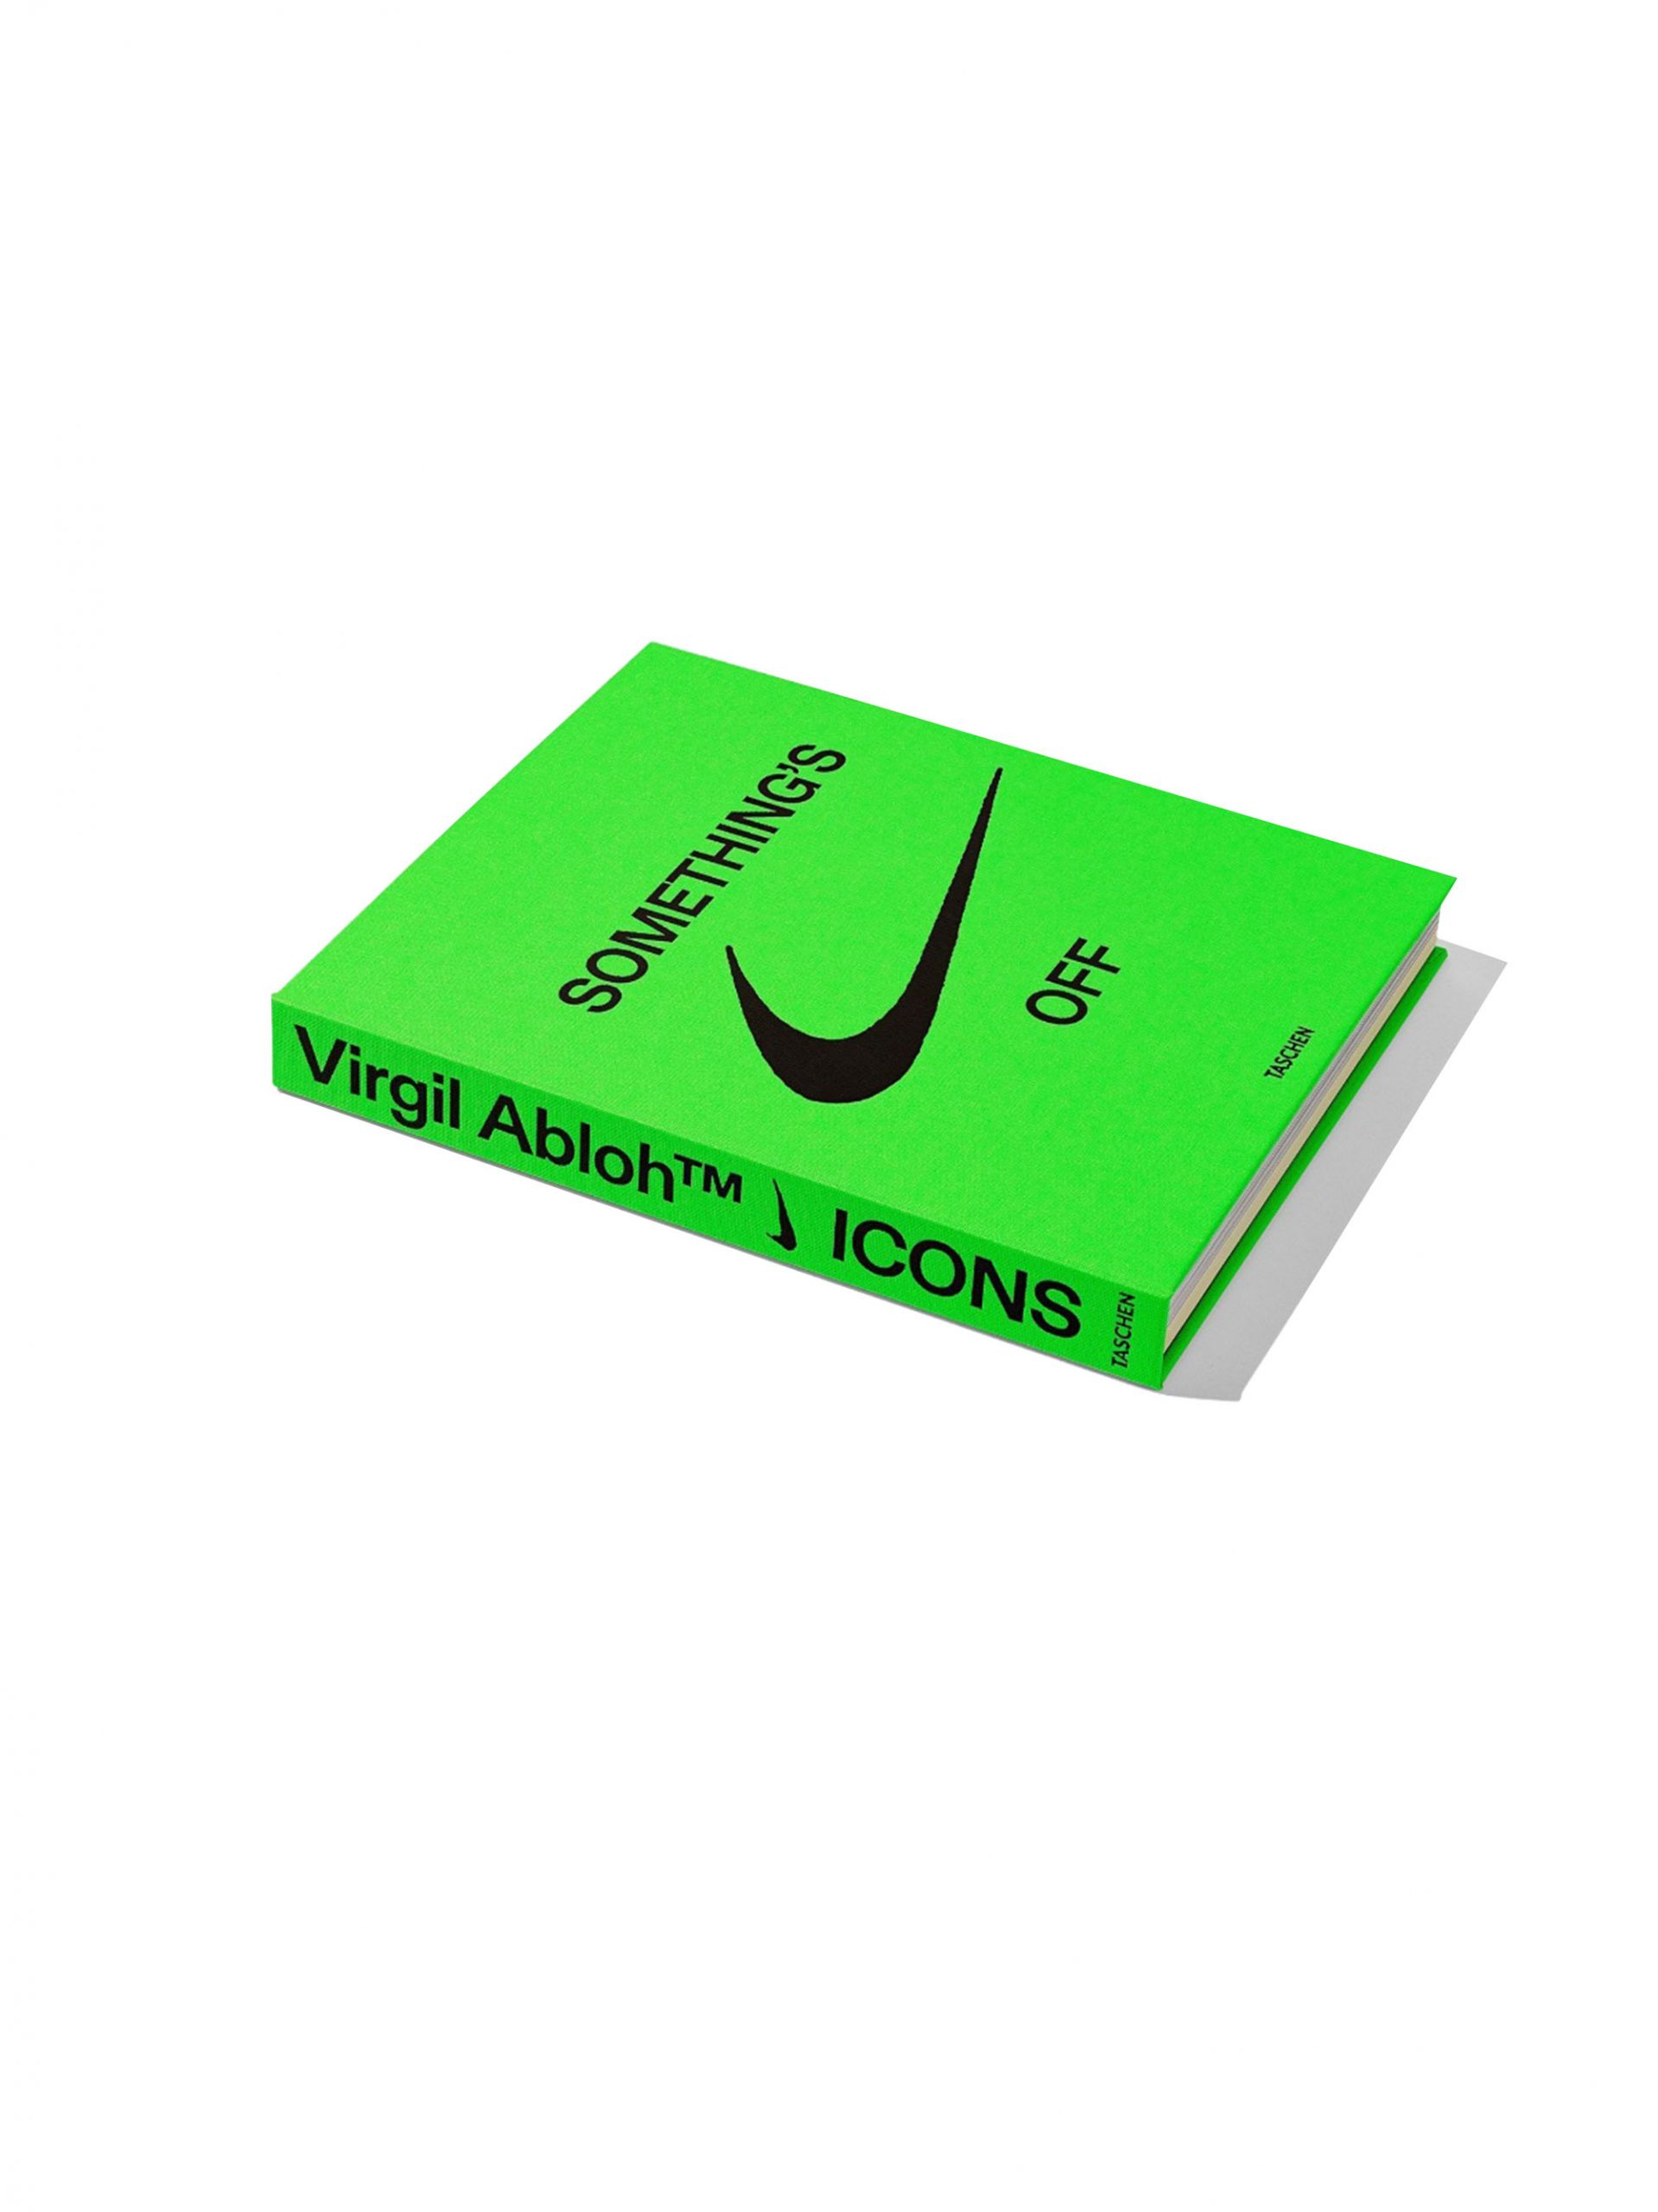 "<p class='small-title'>TASCHEN</p>TASCHEN ICONS ""Something's Off"" Nike e Virgil Abloh"